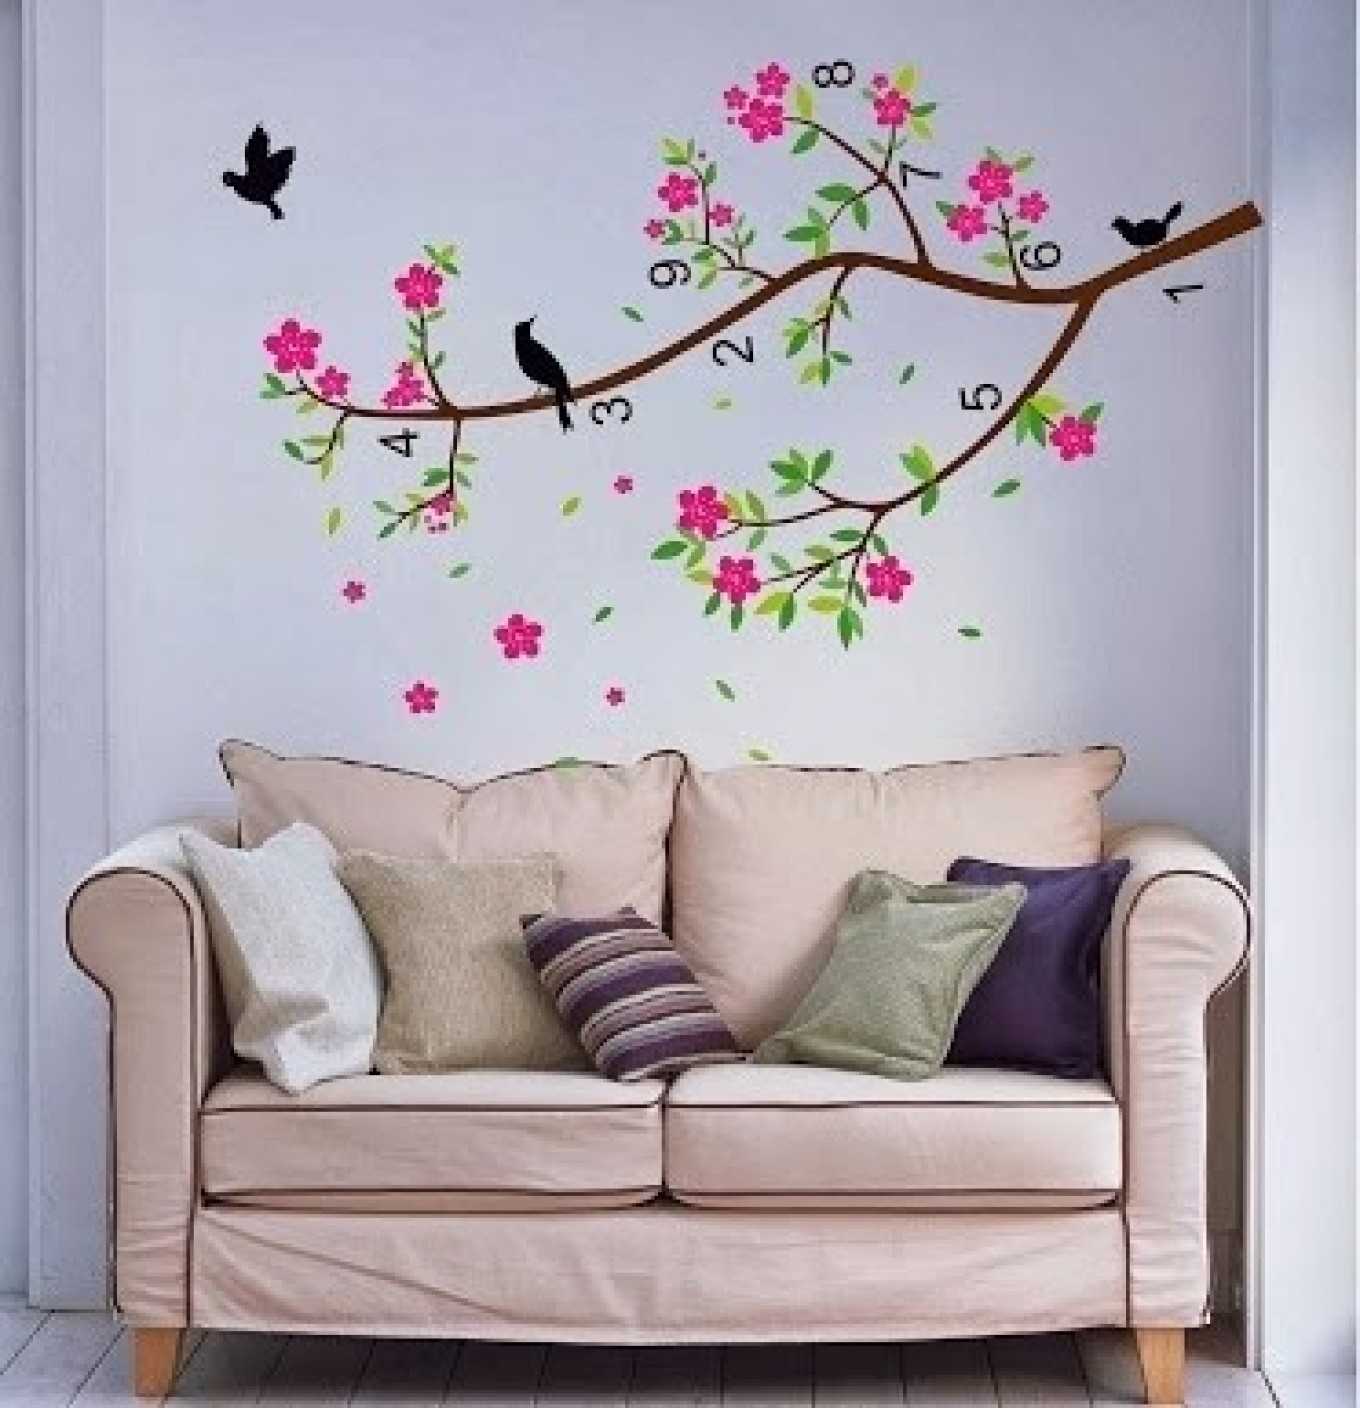 WoW Wall Stickers PVC Removable Sticker Price in India ...